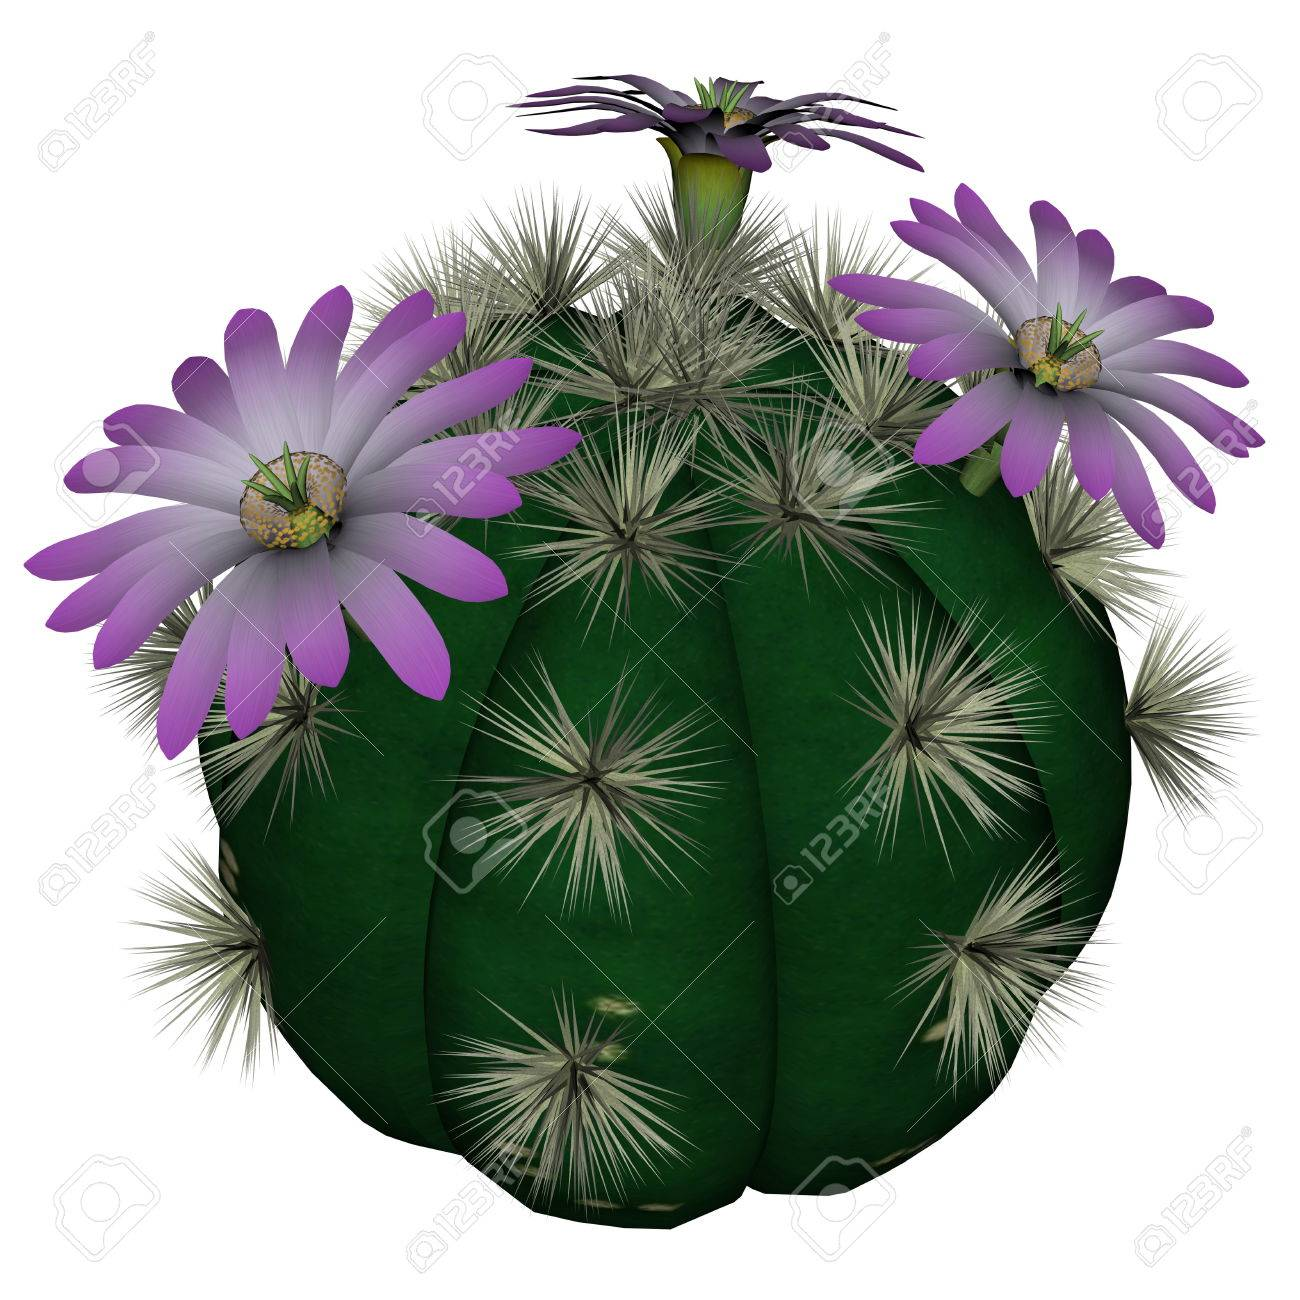 Spherical Cactus With Violet Flowers Isolated In White Background